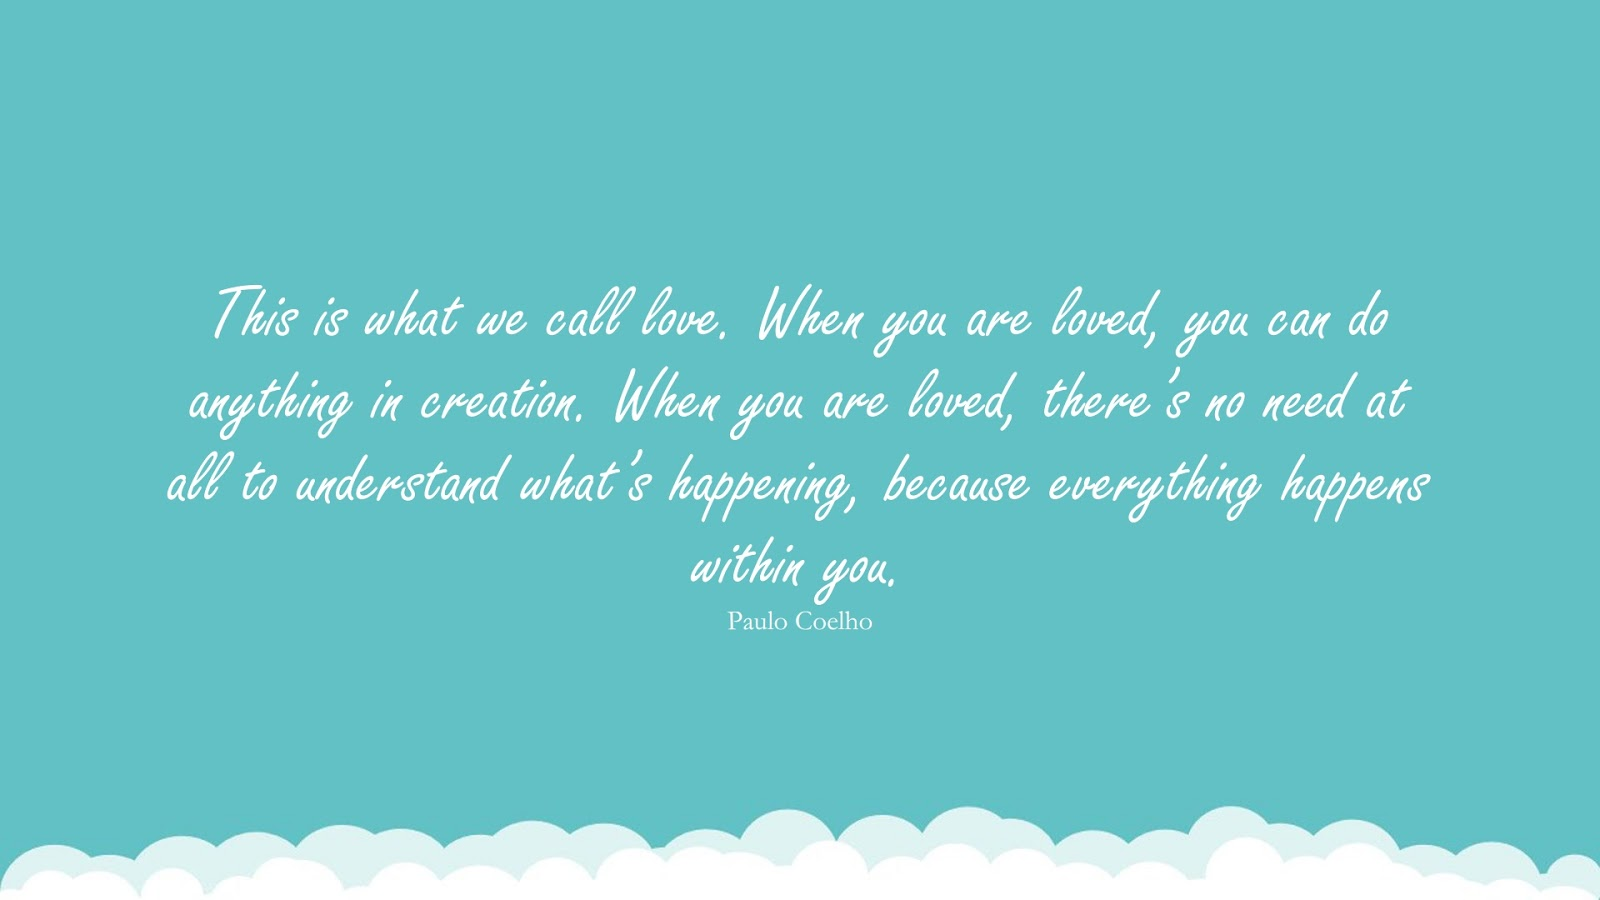 This is what we call love. When you are loved, you can do anything in creation. When you are loved, there's no need at all to understand what's happening, because everything happens within you. (Paulo Coelho);  #LoveQuotes